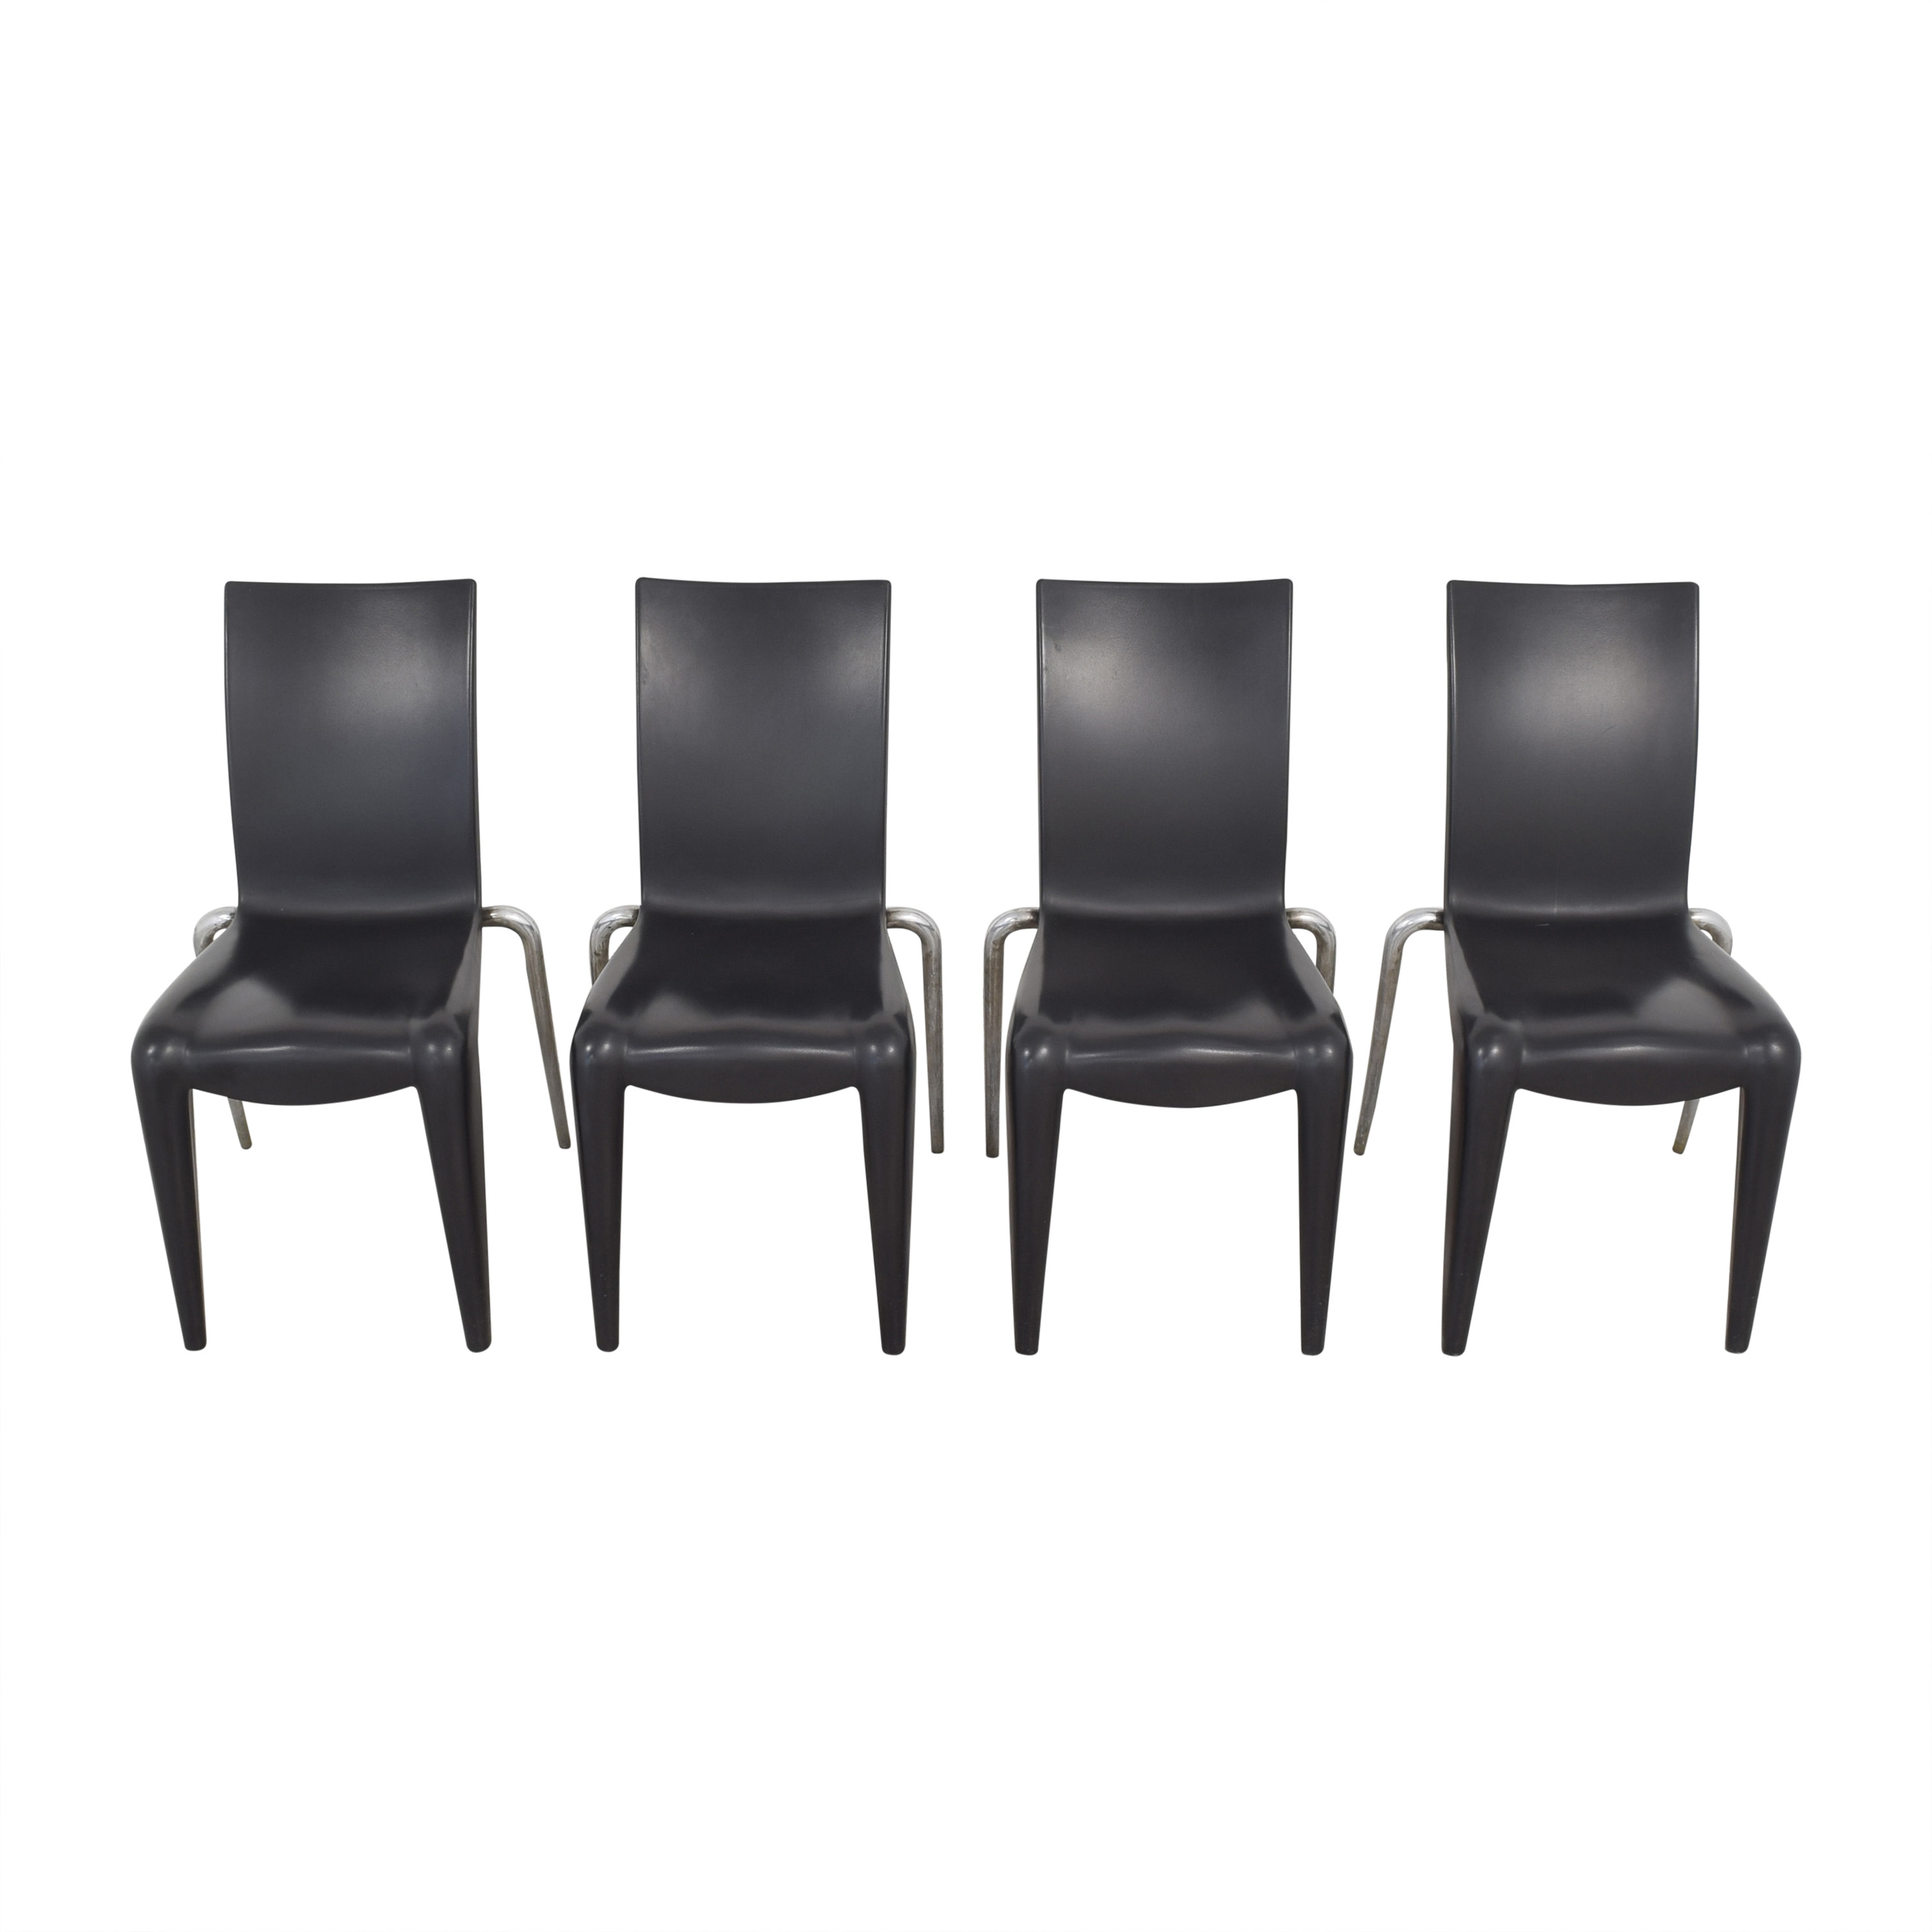 Vitra Vitra Louis 20 Dining Chairs by Phillipe Starck Dining Chairs